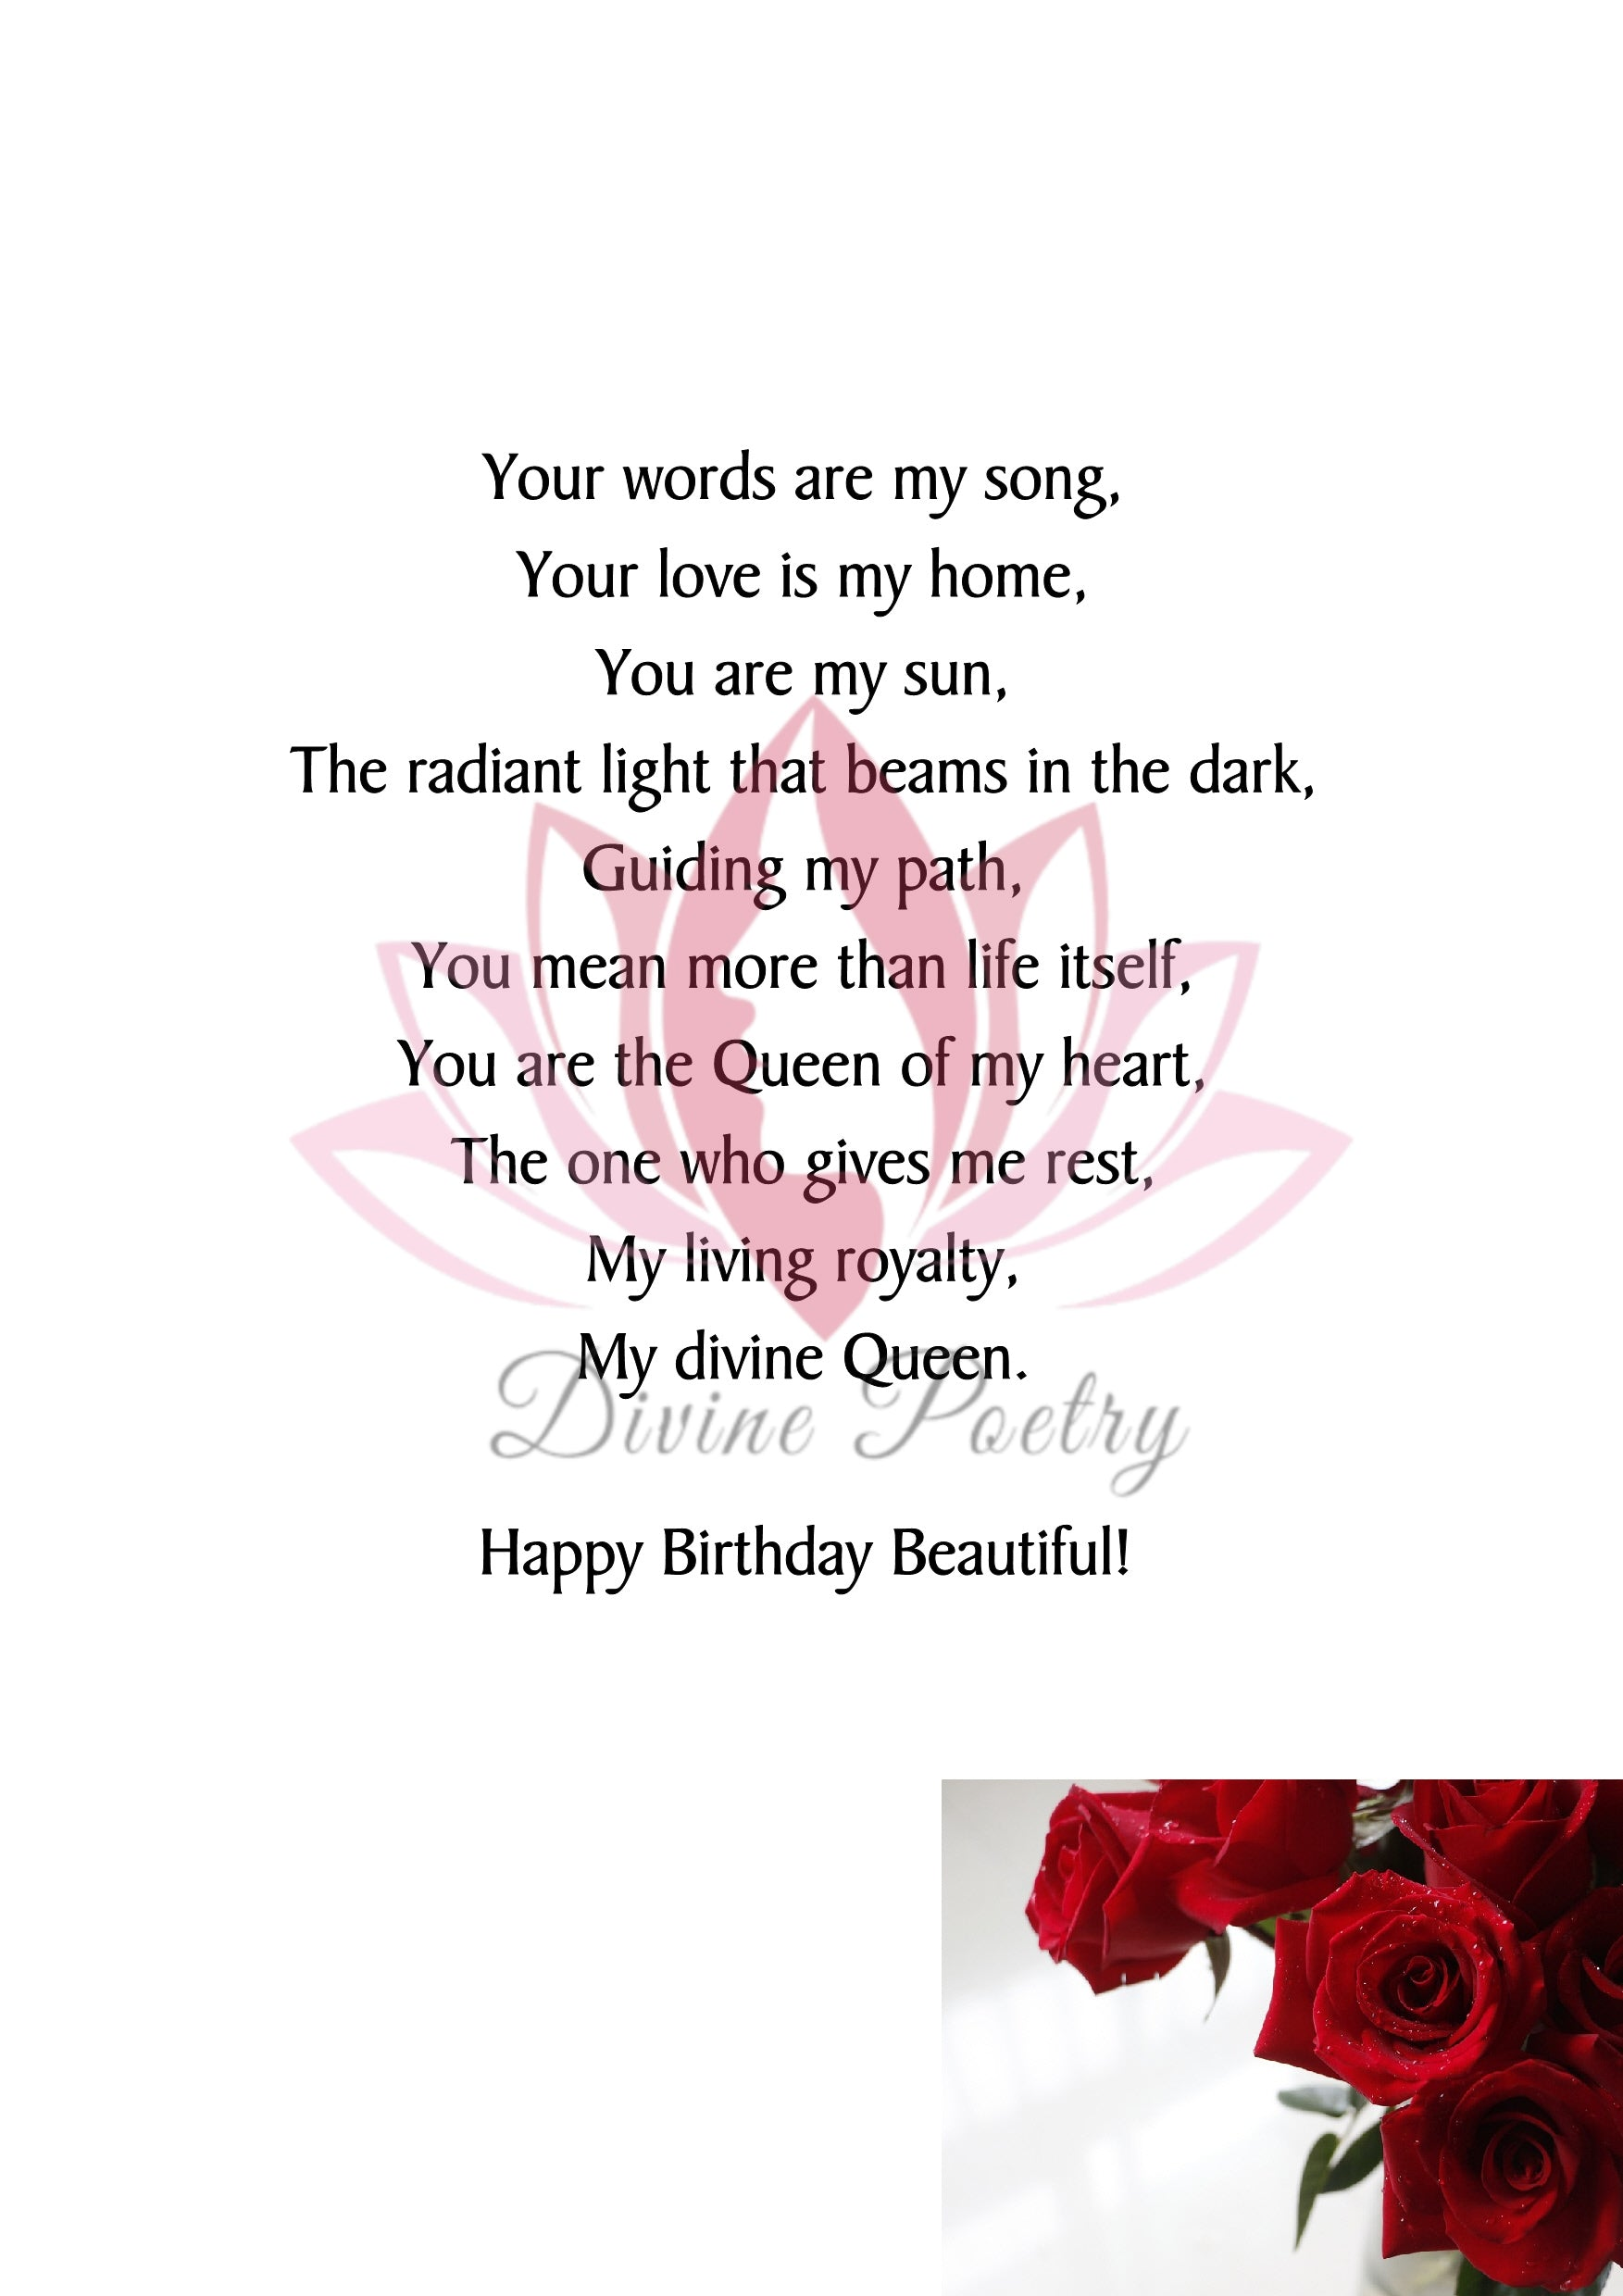 To My Beautiful Wife - Divine Poetry